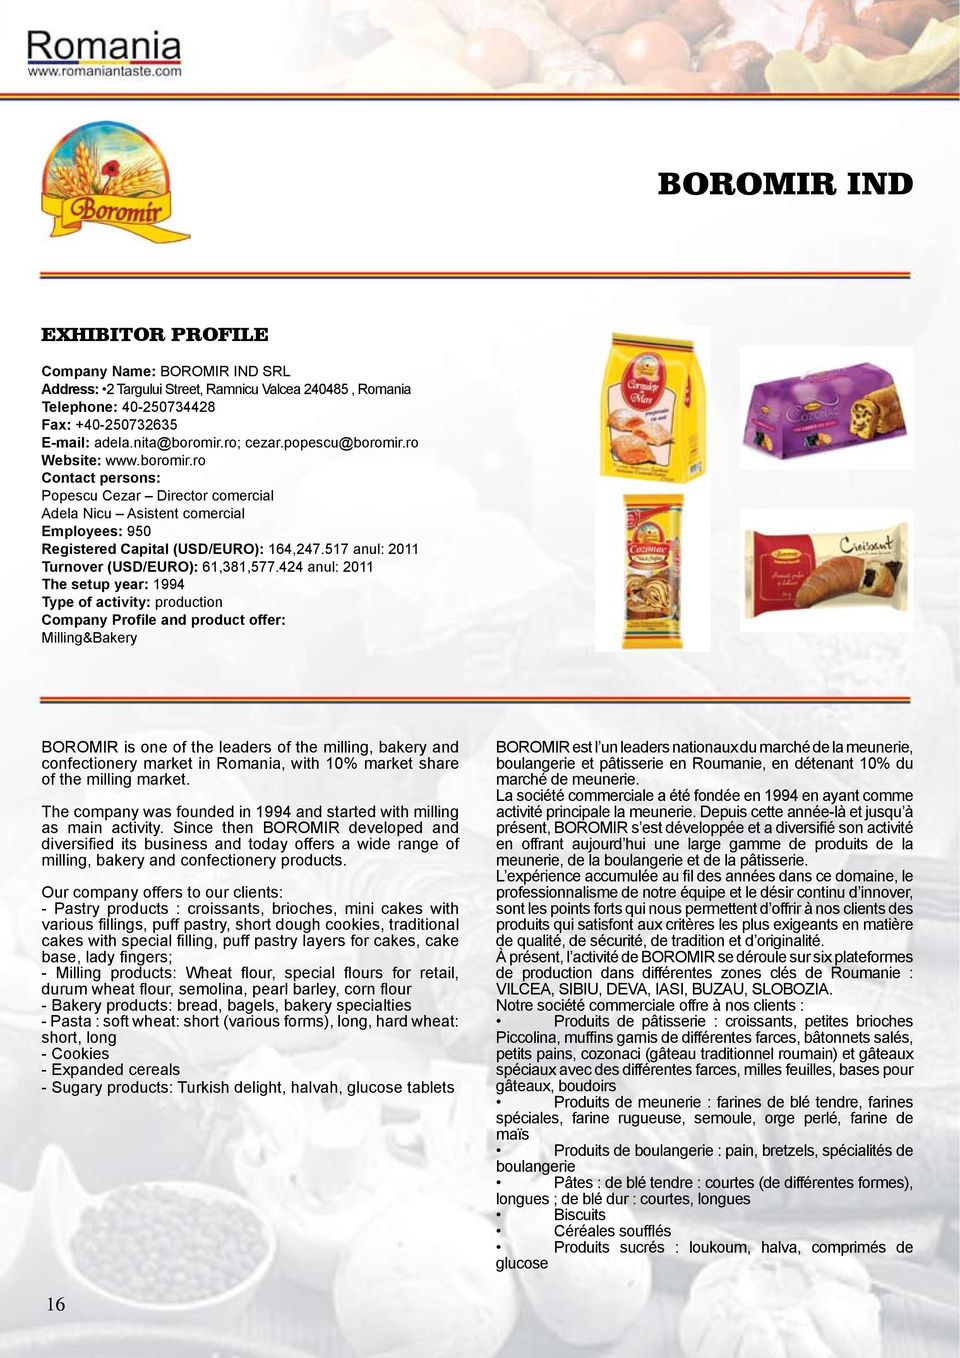 424 anul: 2011 The setup year: 1994 Type of activity: production Company Profile and product offer: Milling&Bakery BOROMIR is one of the leaders of the milling, bakery and confectionery market in